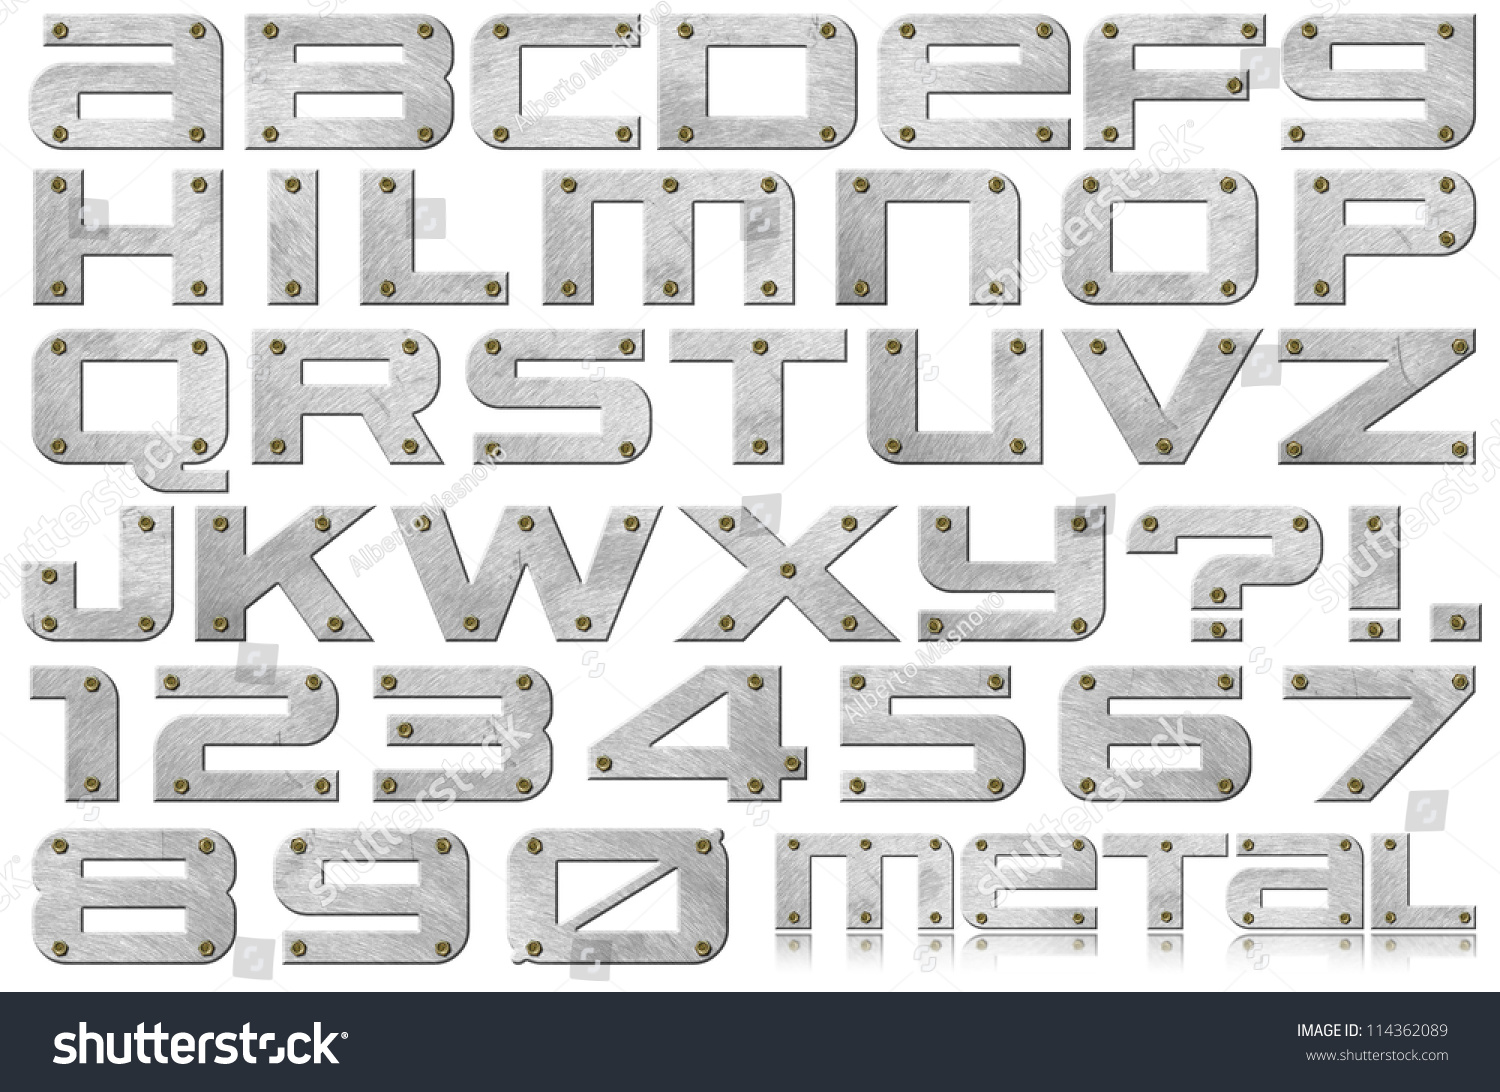 stock-photo-metal-letters-and-numbers-me